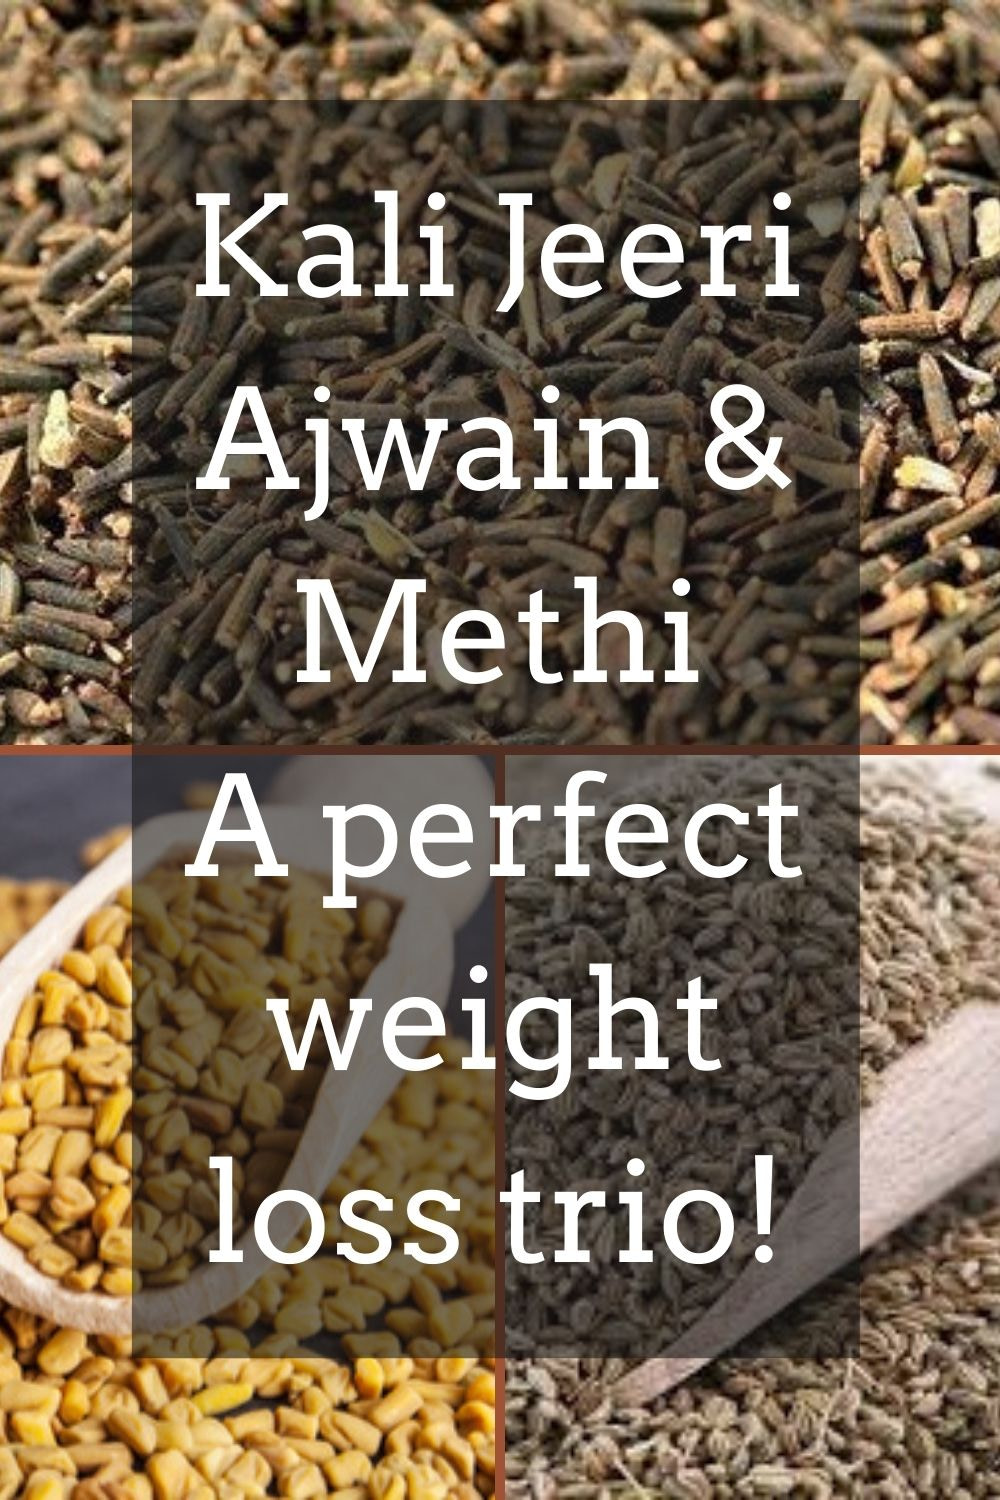 Kali Jeeri, Methi, Ajwain Benefits Pinterest Graphic